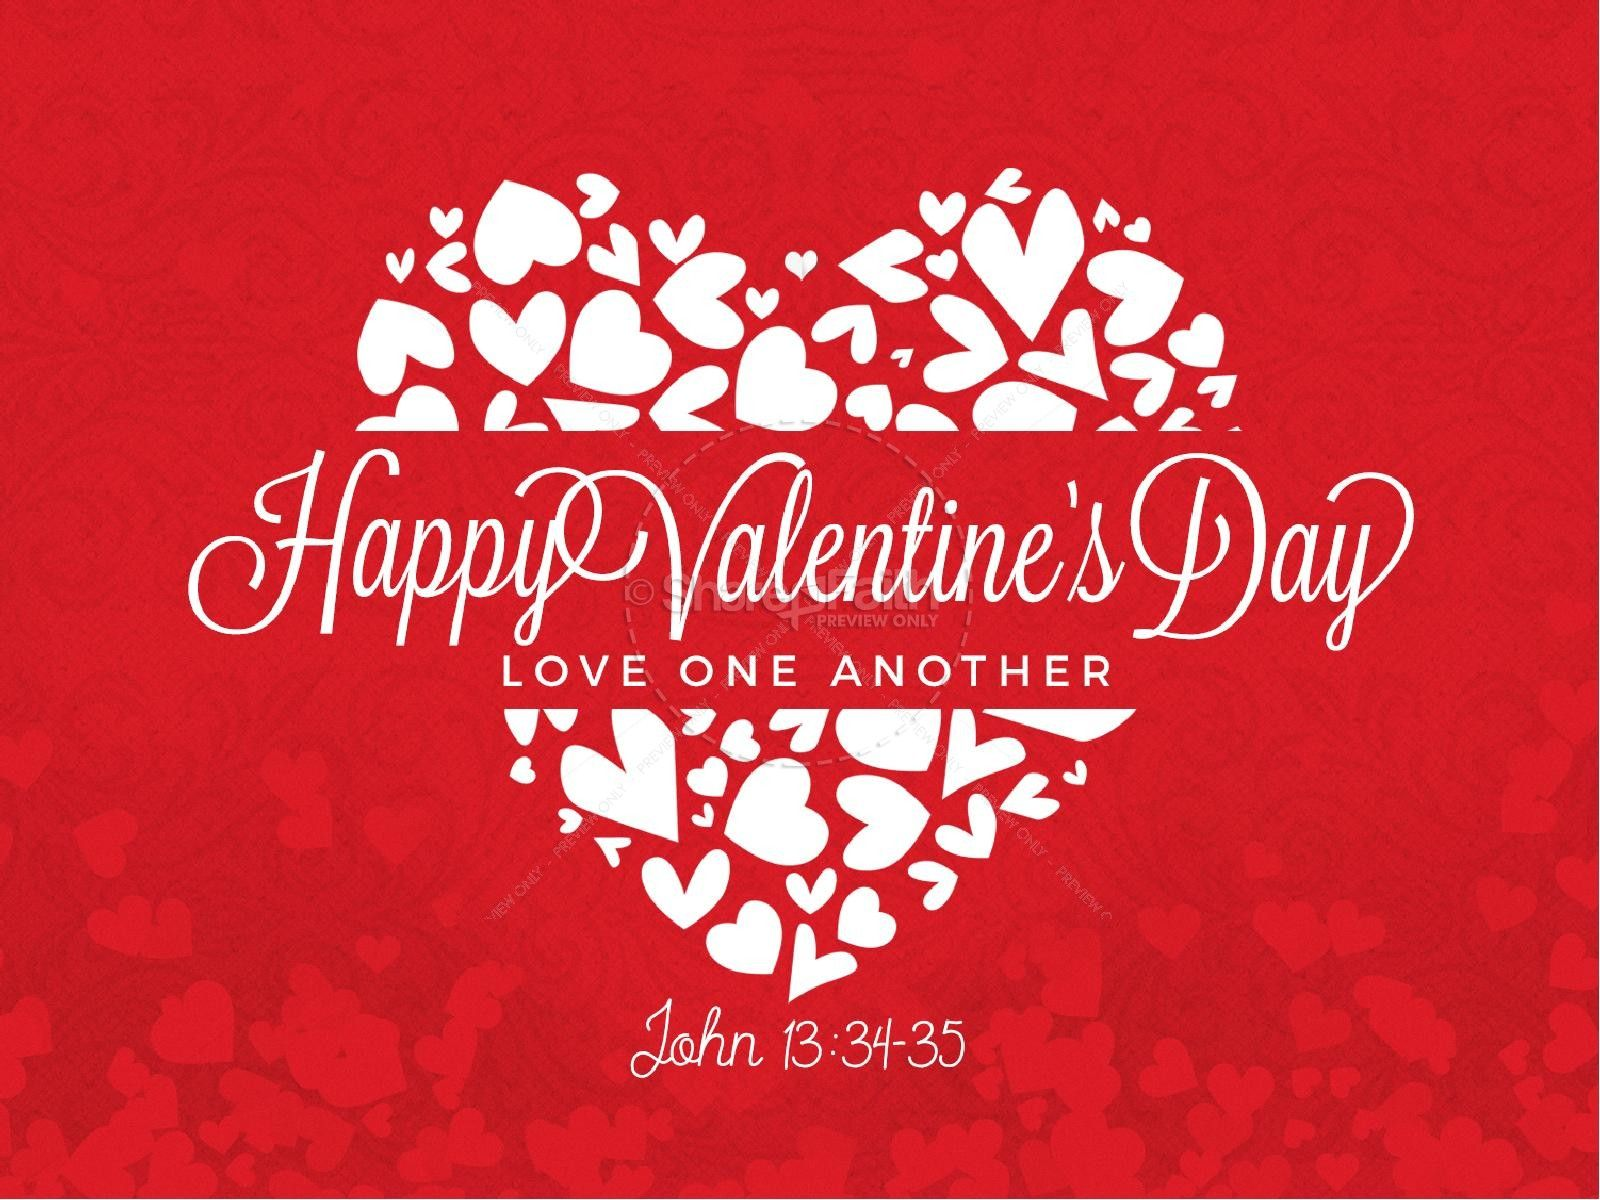 Happy valentines day love one another church powerpoint set happy happy valentines day love one another church powerpoint set alramifo Gallery